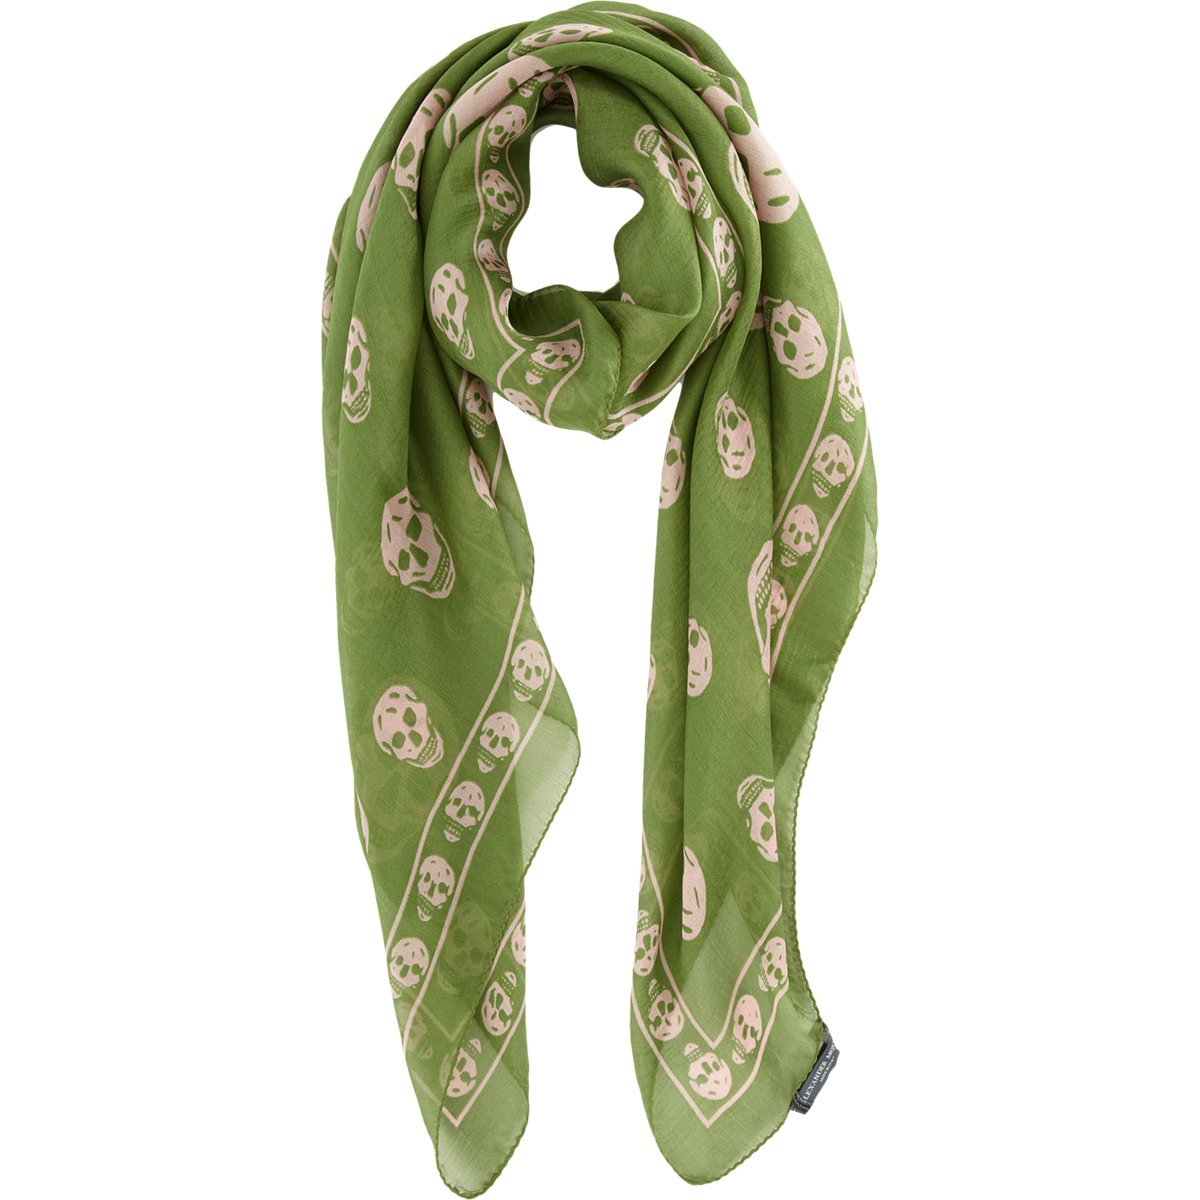 Alexander McQueen Skull Print Scarf in Green for Men - Lyst